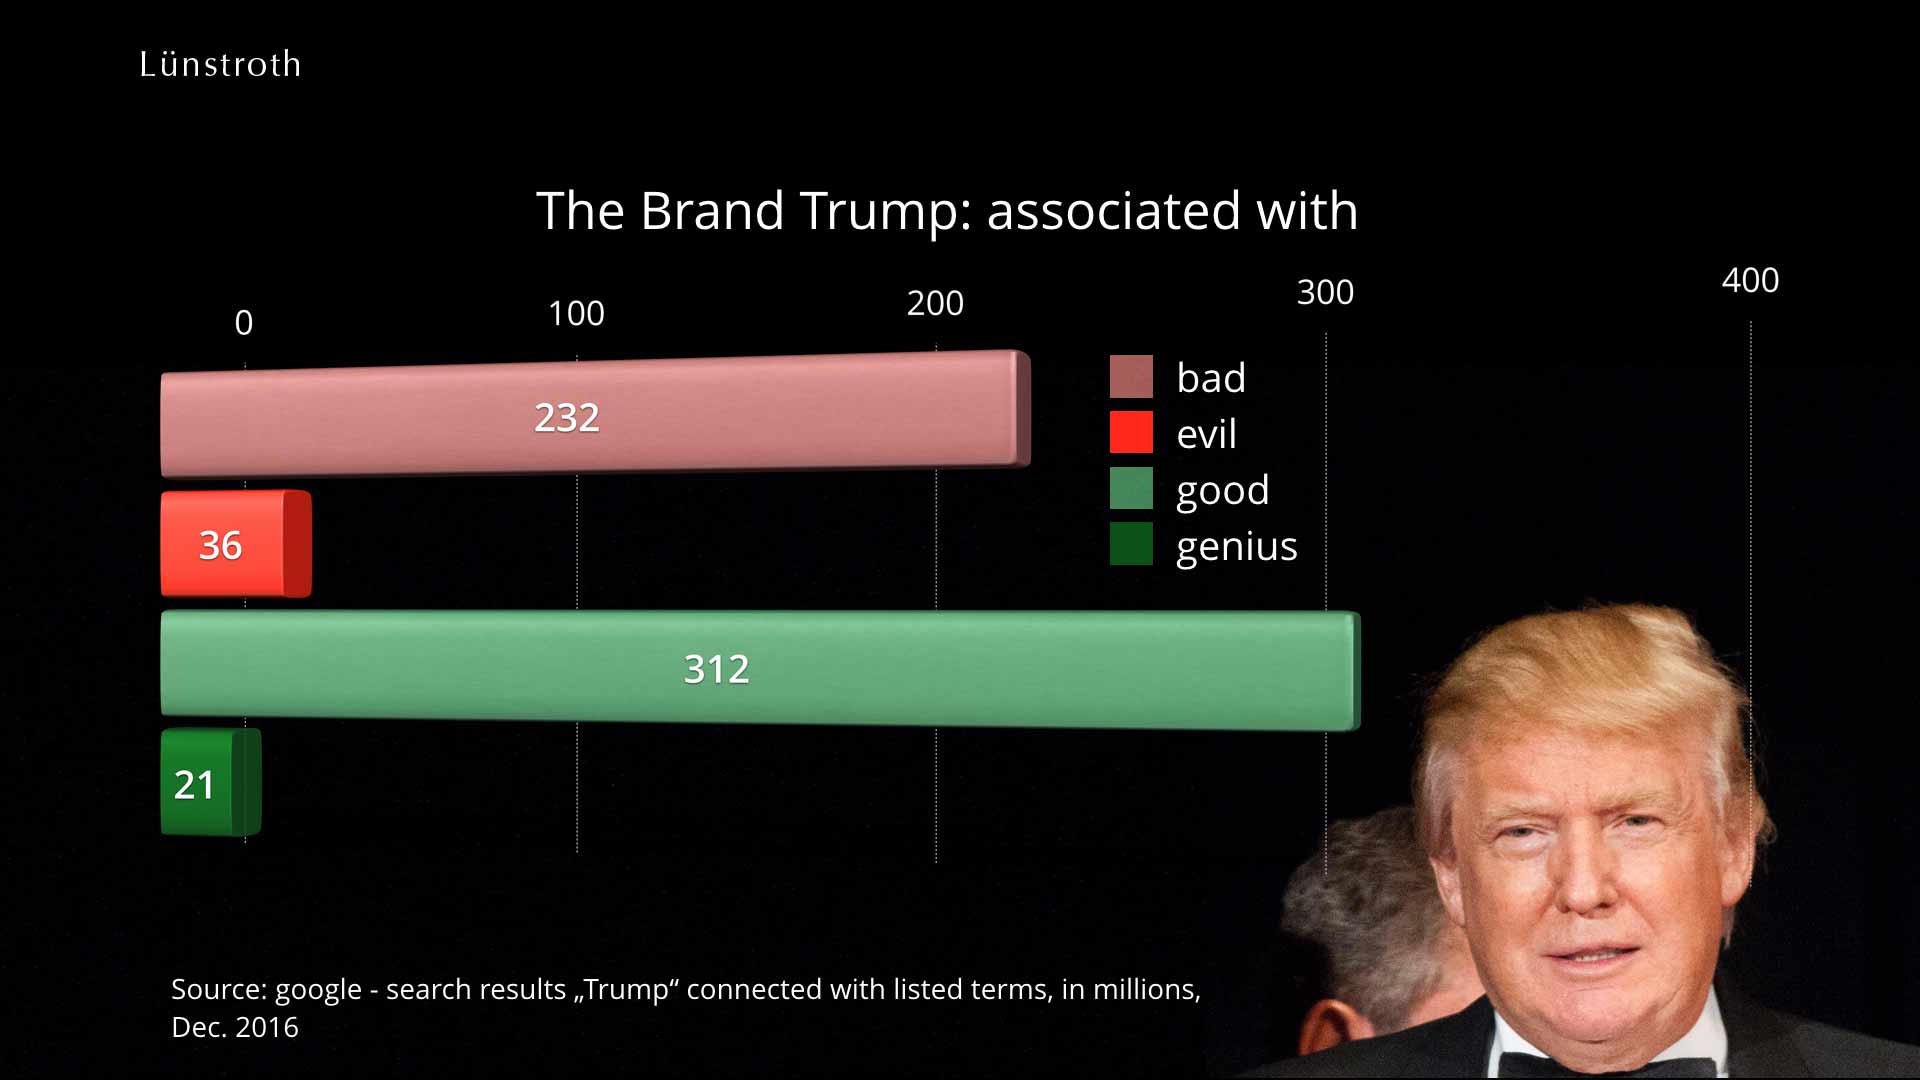 How Trump is massacring his brand.